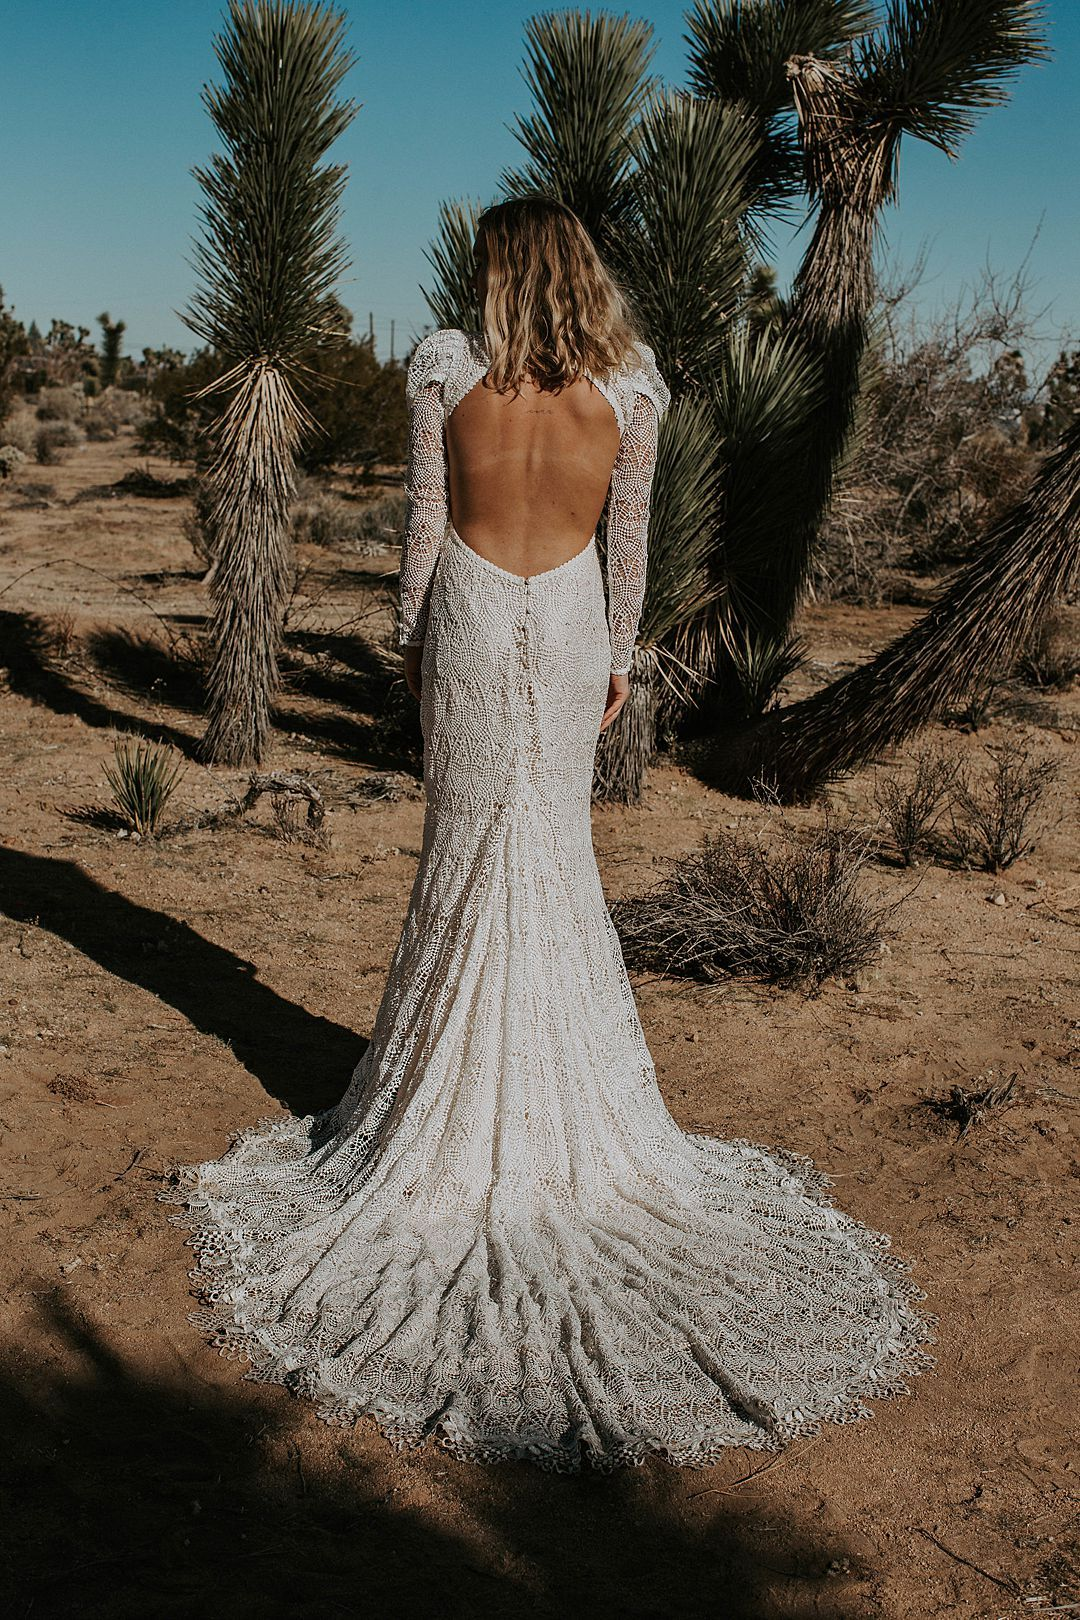 New wedding dress  The Stunning New Wedding Dress Collection From Daughters of Simone